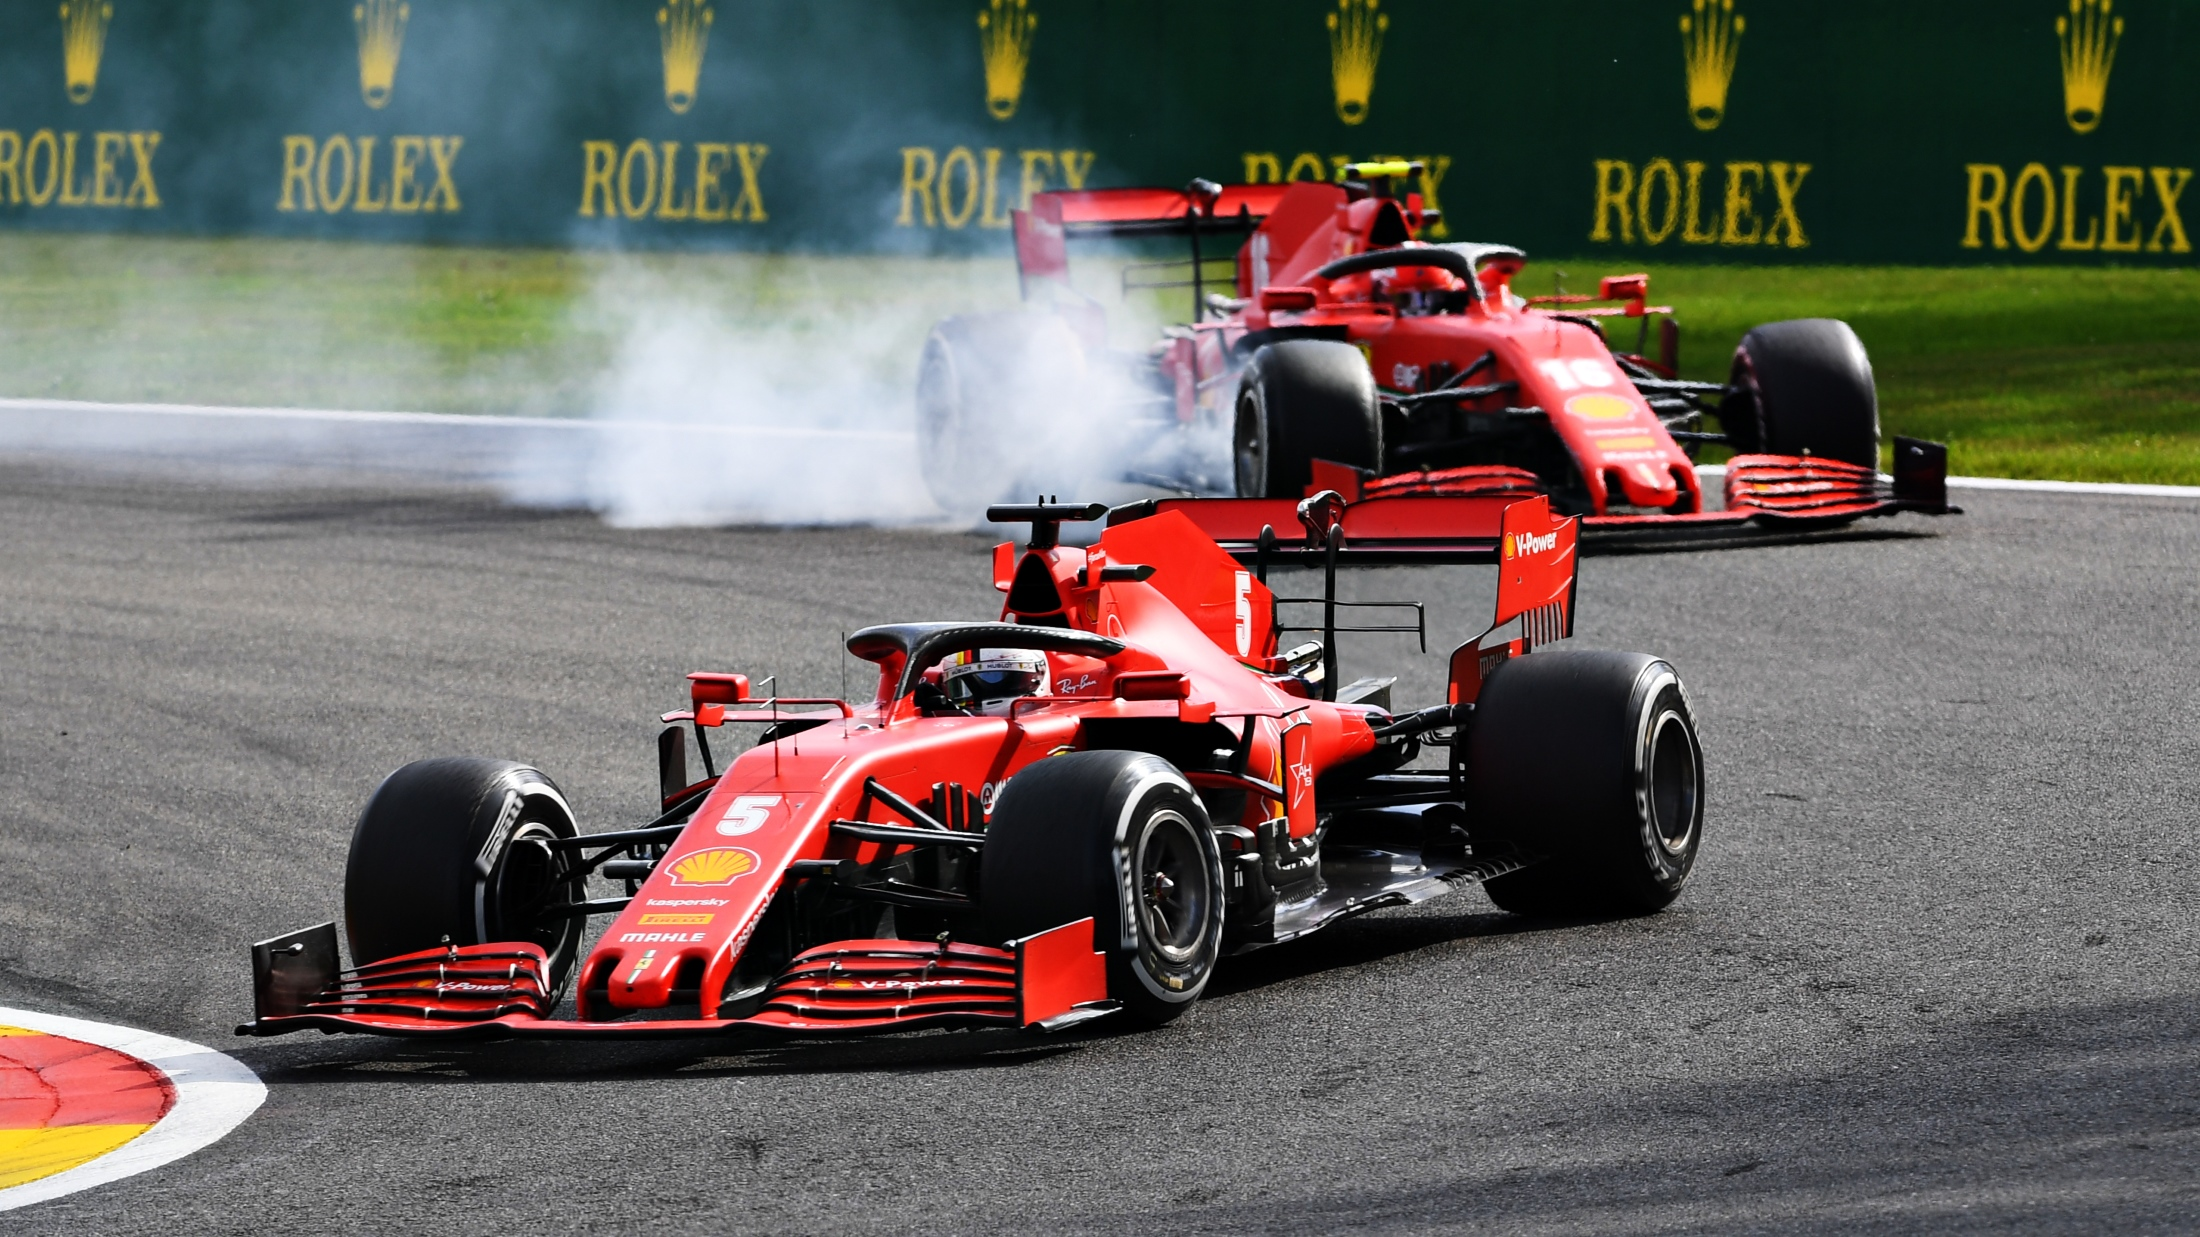 Ferrari looking to put 'extremely frustrating' Spa weekend behind them  ahead of pair of home races | Formula 1®